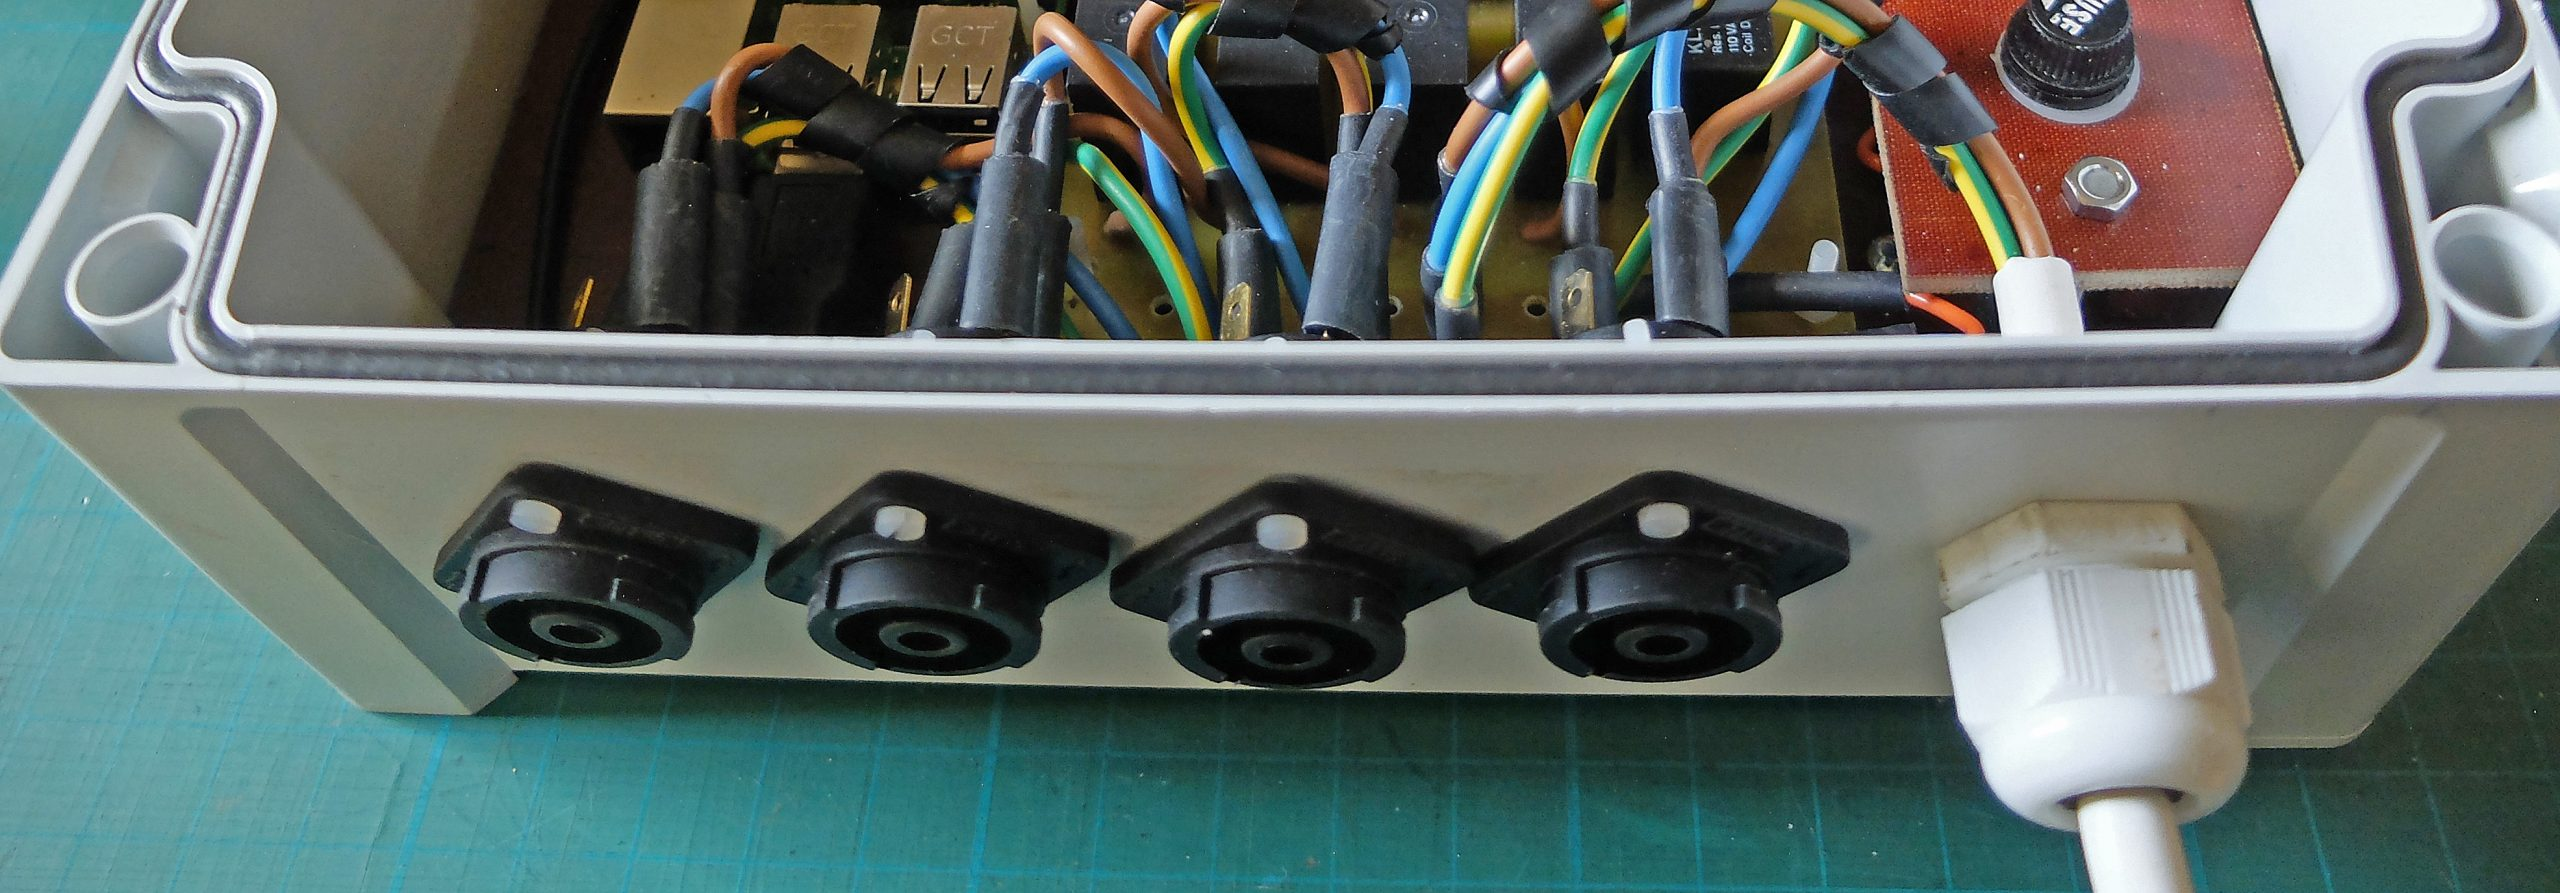 Clifcon 230 volt sockets